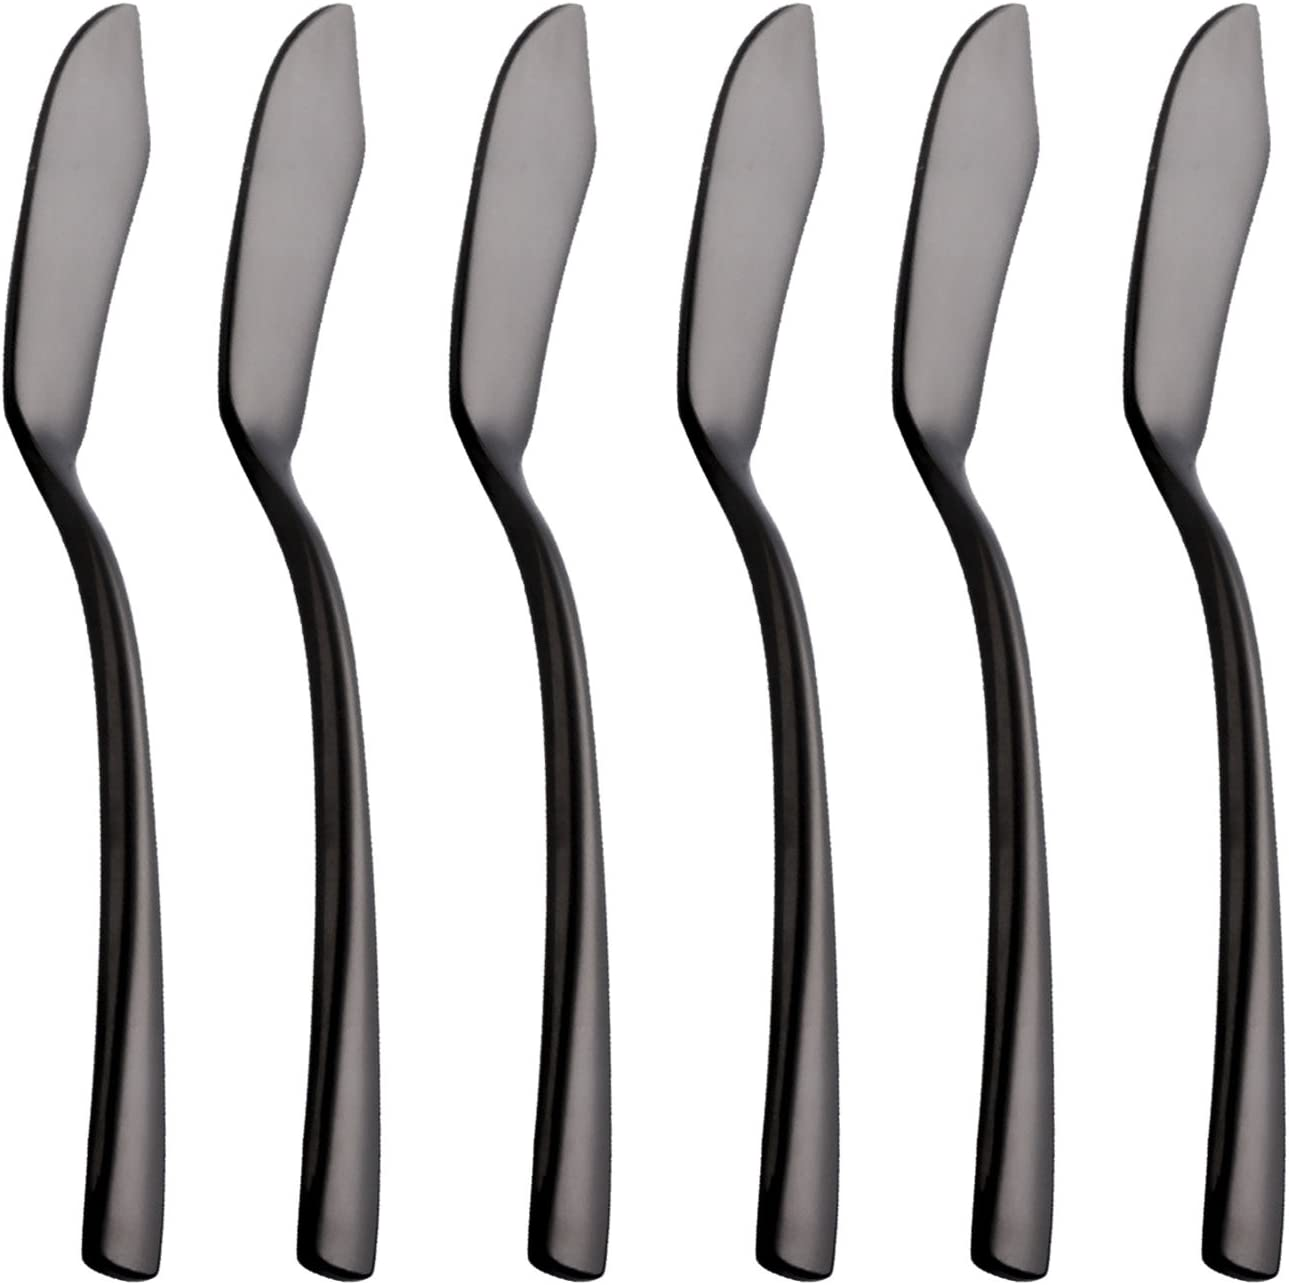 Onlycooker 6 Piece Black Butter Spreader Knife 6.6 inch Stainless Steel Cheese Spreader Knives Sets Silverware Set for 6 Flatware Mirror Polished Dishwasher Safe for Kitchen